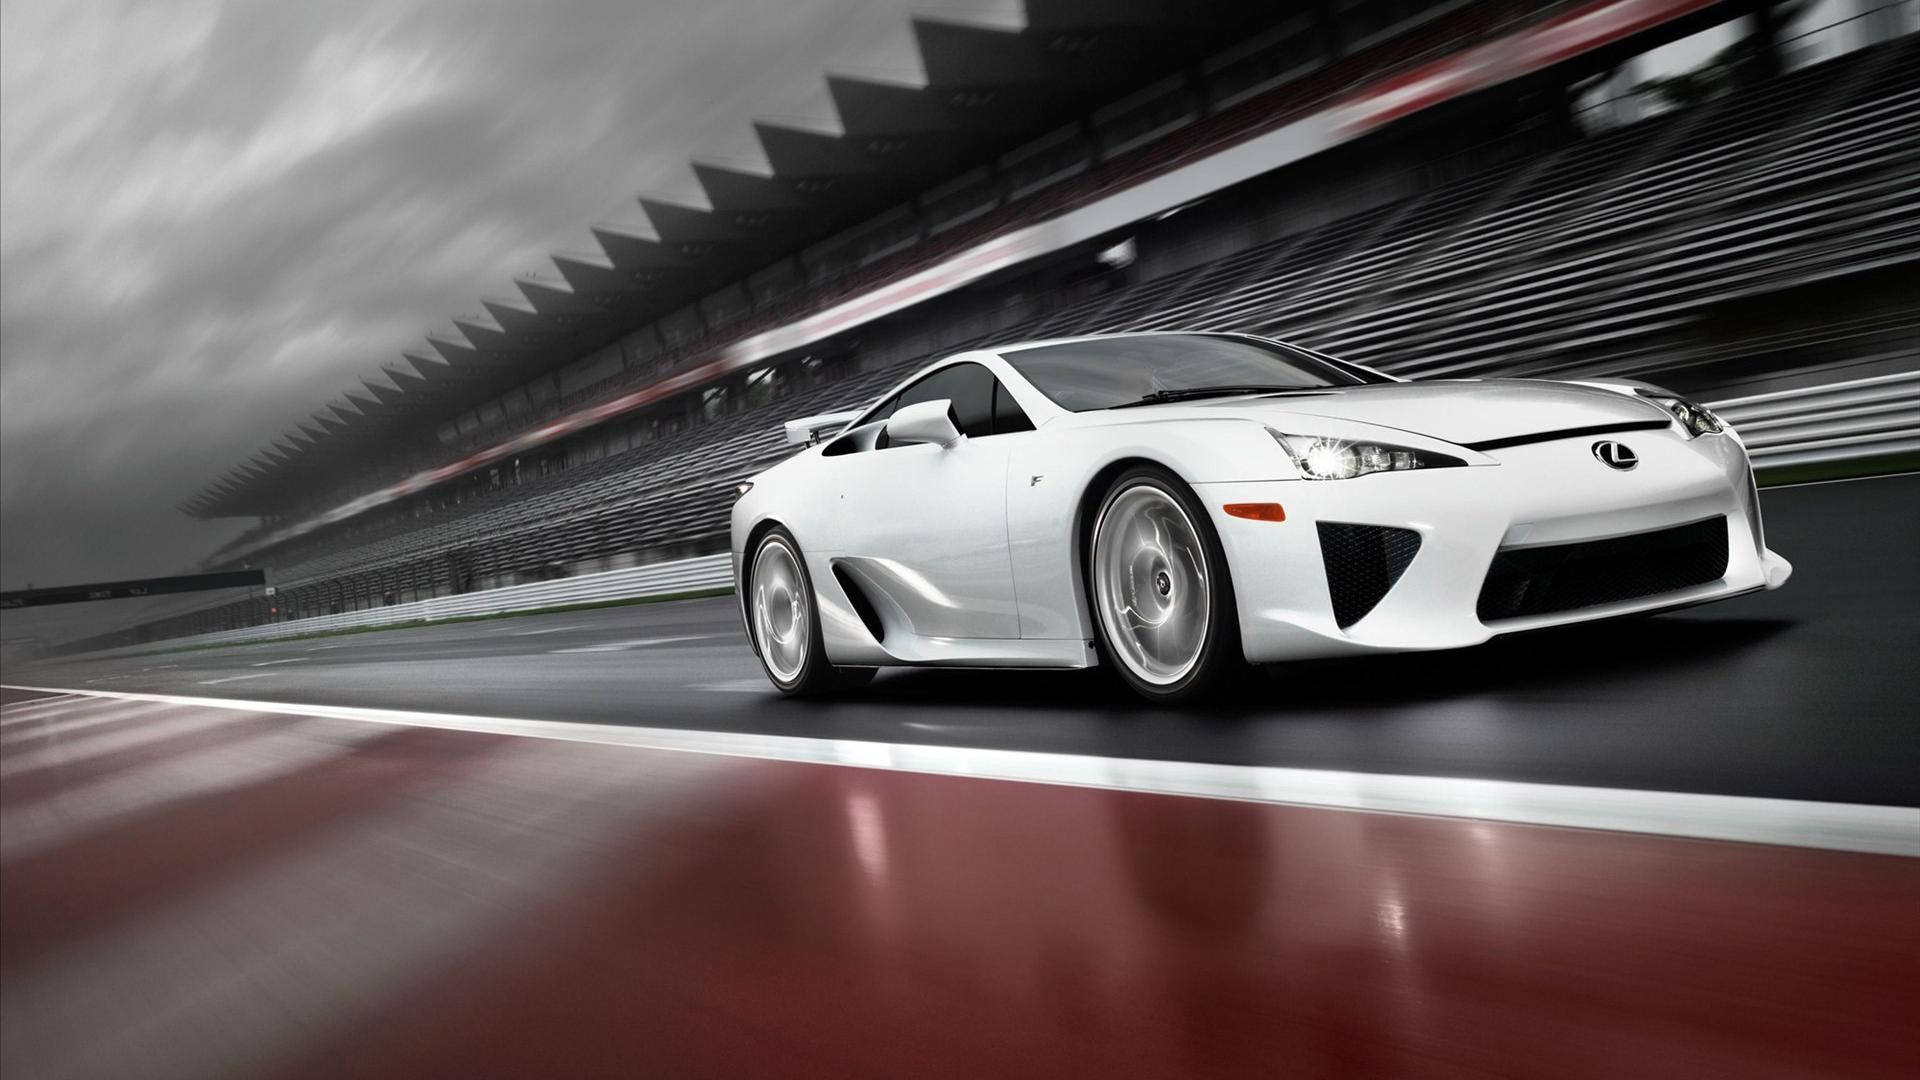 desktop wallpapers cars wallpaper | hd wallpapers | pinterest